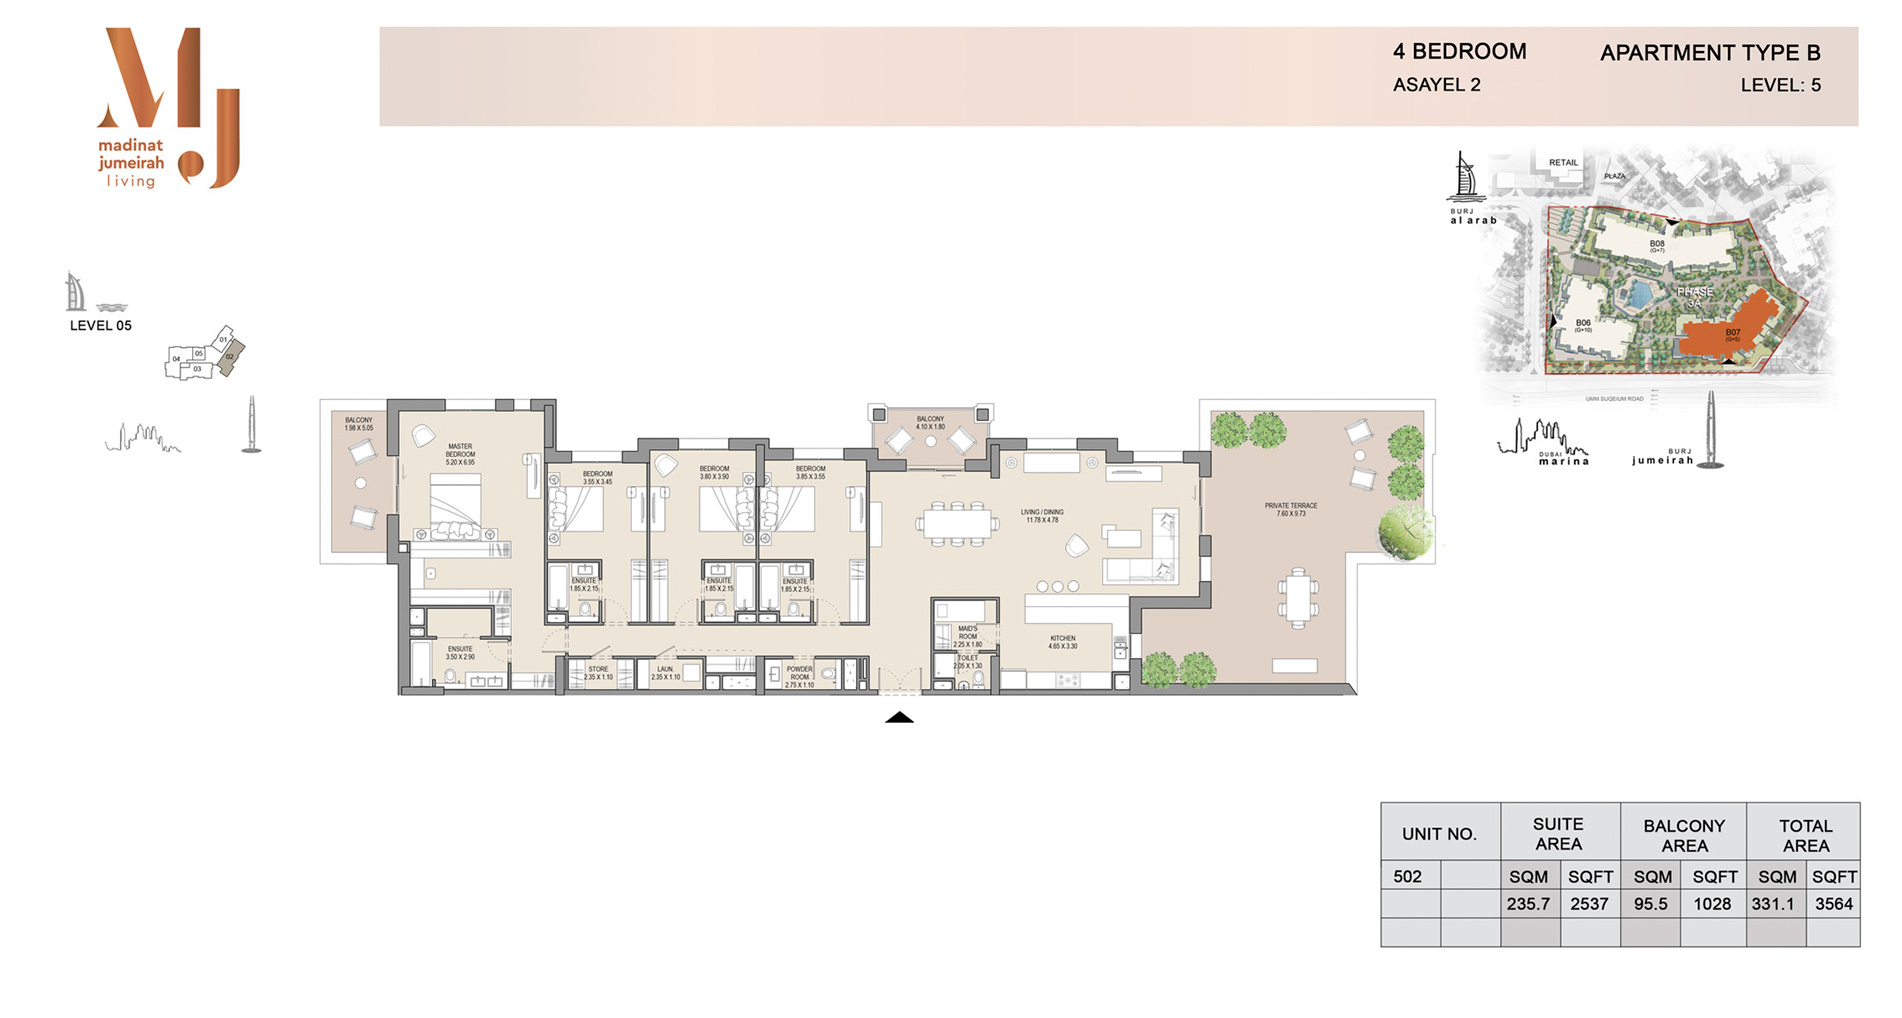 Building 2, 4 Bed Type B Level 5, Size 3564    sq. ft.